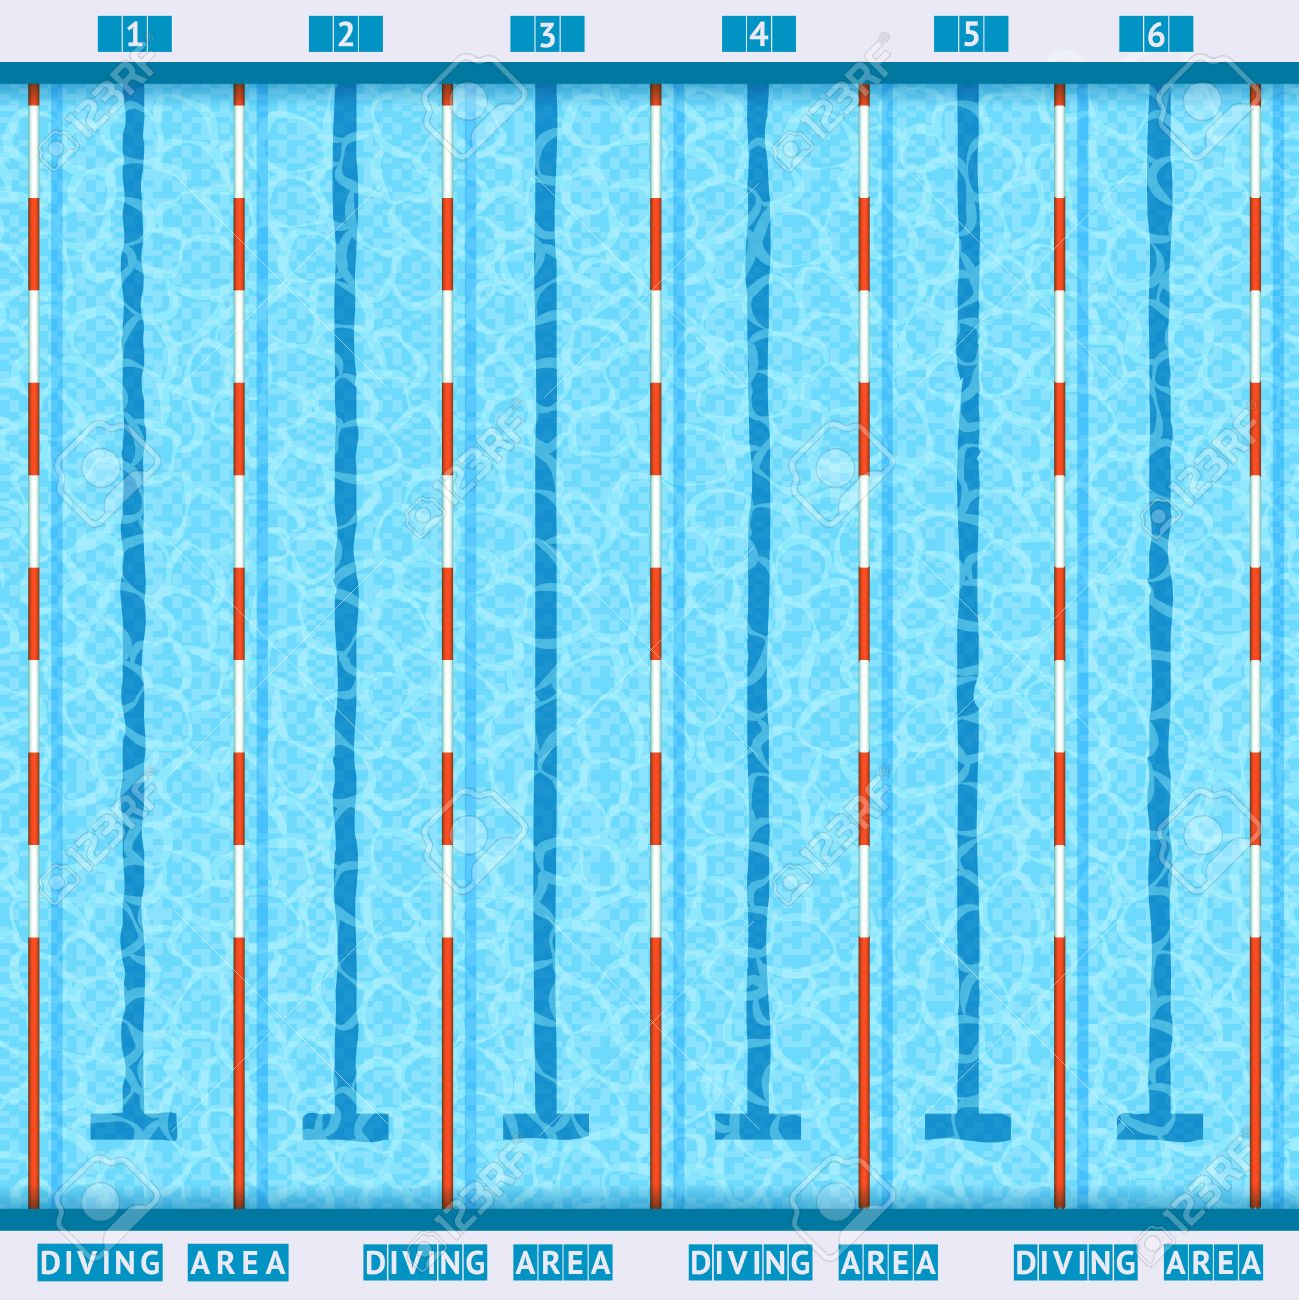 Swimming Pool Lanes Background sports competition swimming pool deep bath lanes top view flat